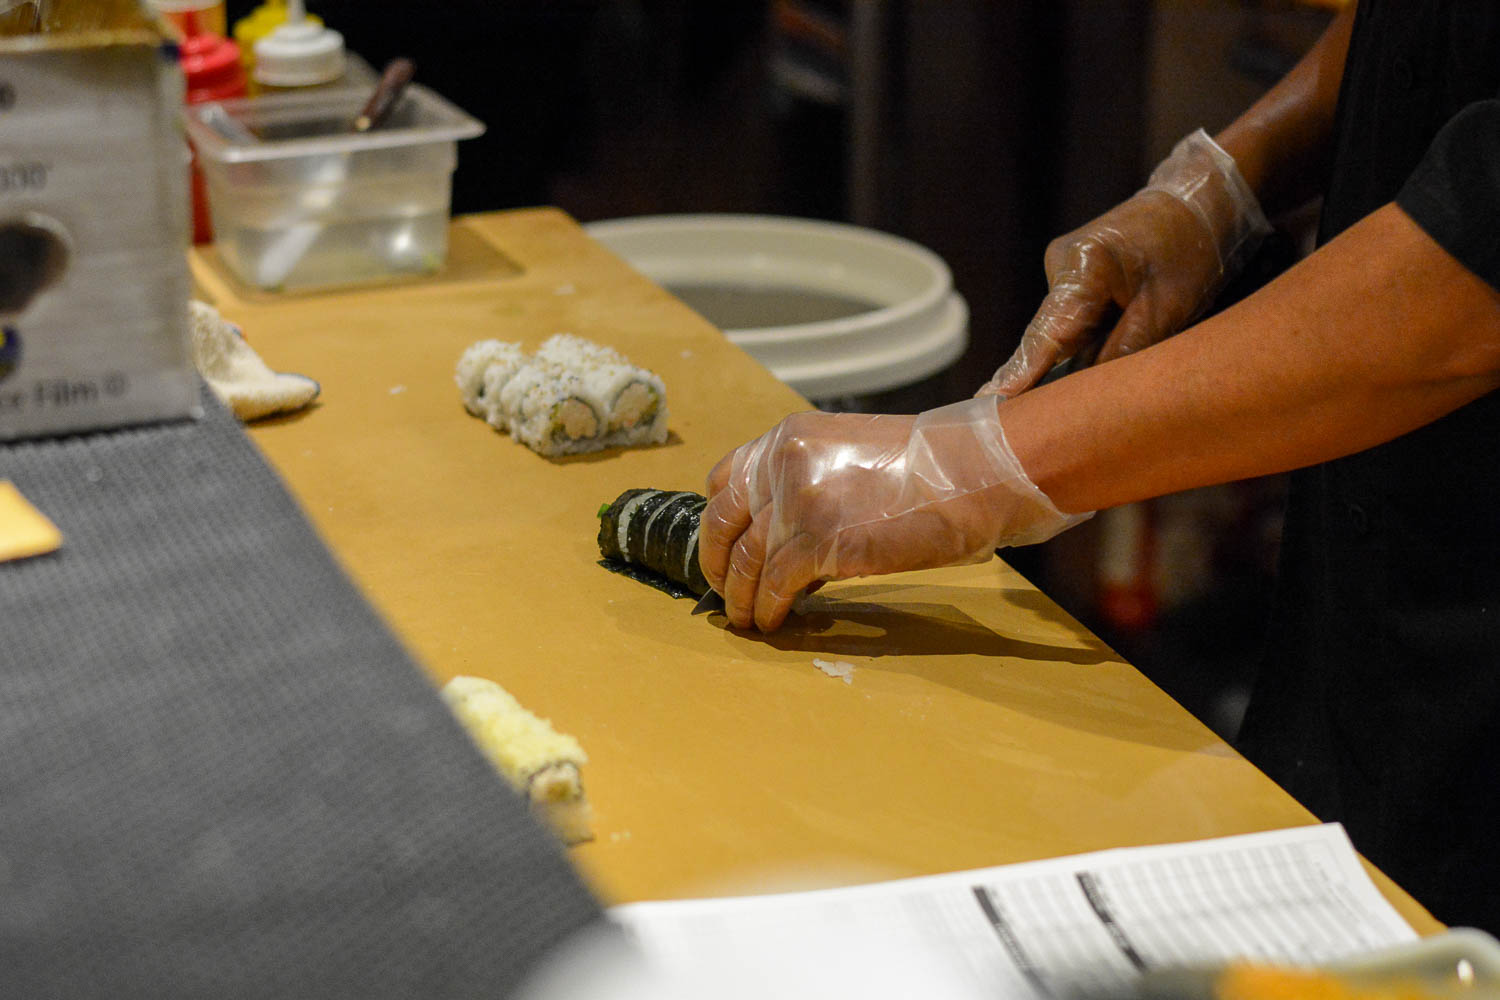 A chef at Zenko Sushi makes a California Roll and Crunch roll for a couple that came in as soon as they opened on Monday at 5:00 PM. They are typically open at 10:30-2:30 PM, and then reopen 5:00- 9:30 or 10 PM depending on the day of the week.